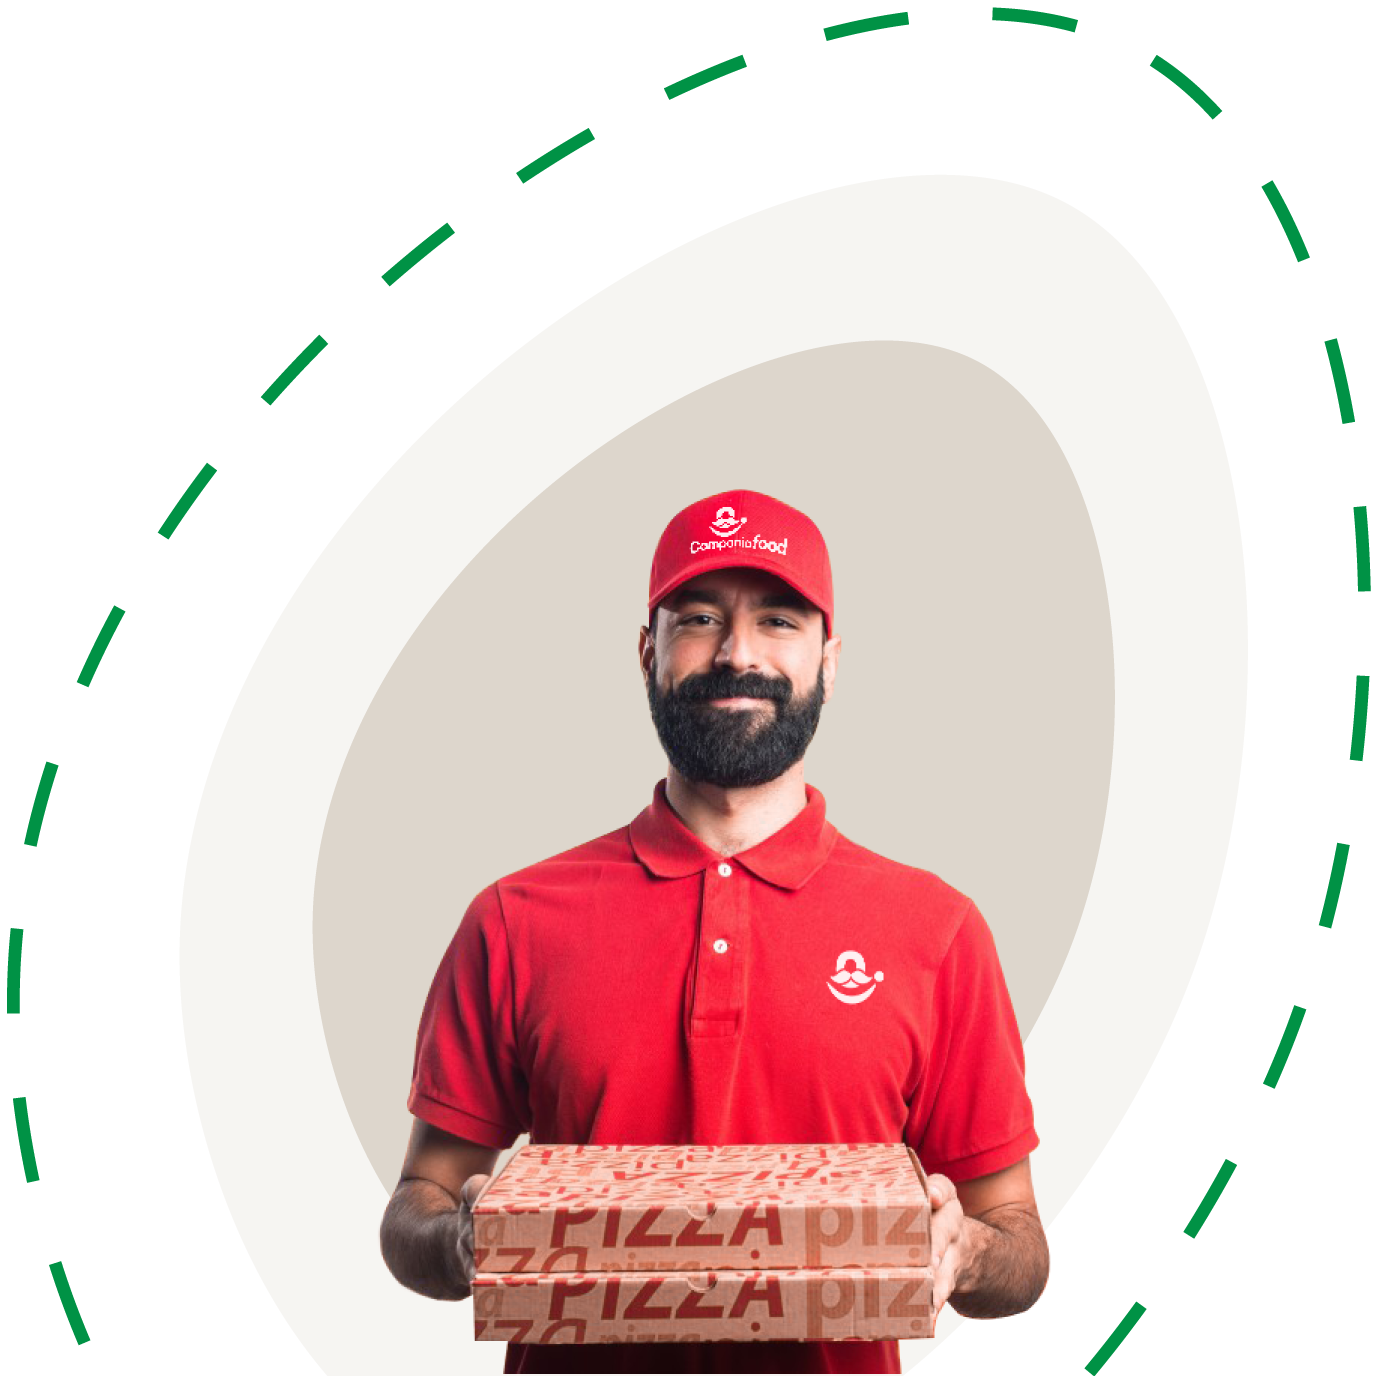 delivery man campania food withe pizza